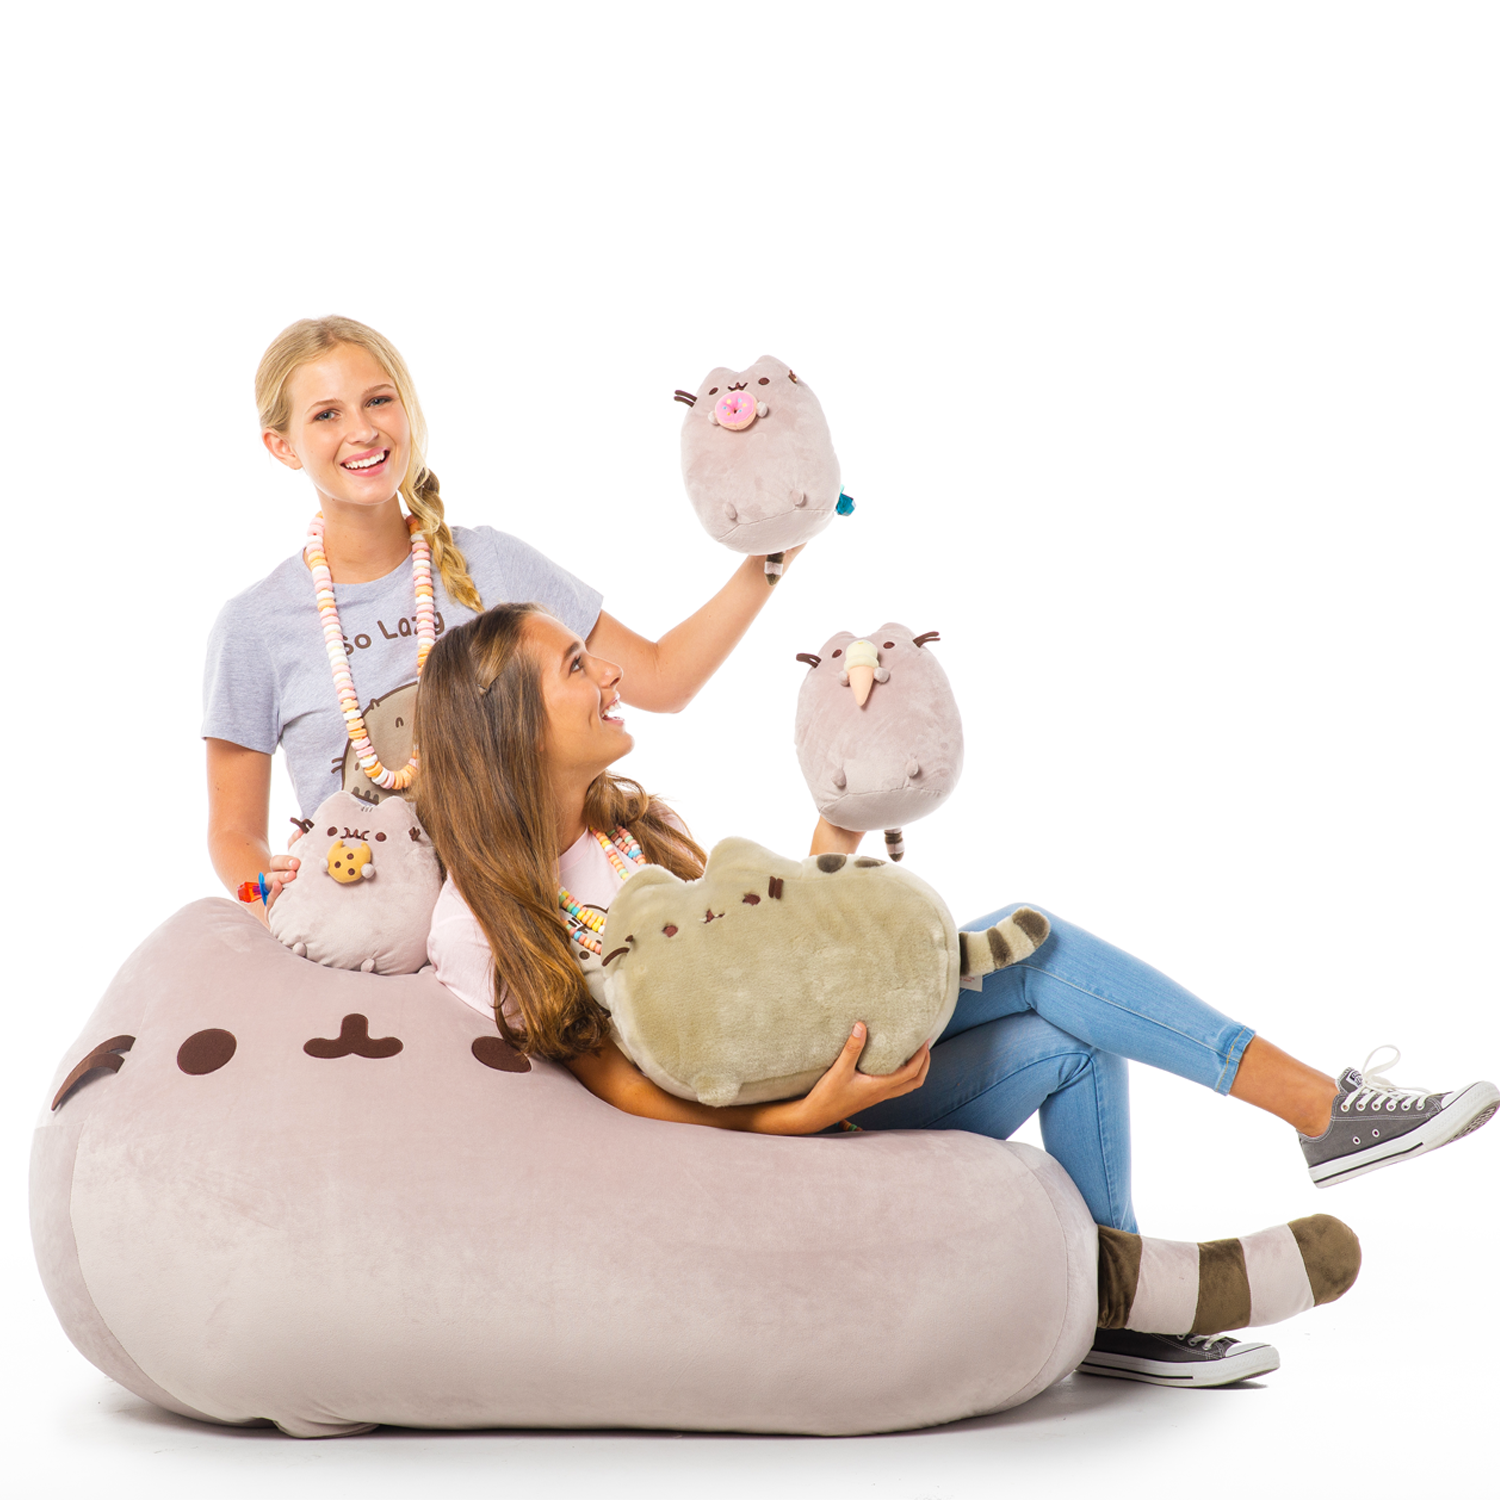 Pusheen Super Jumbo Plush Pusheen Plush Pusheen Cat Merchandise Giant Pusheen Plush